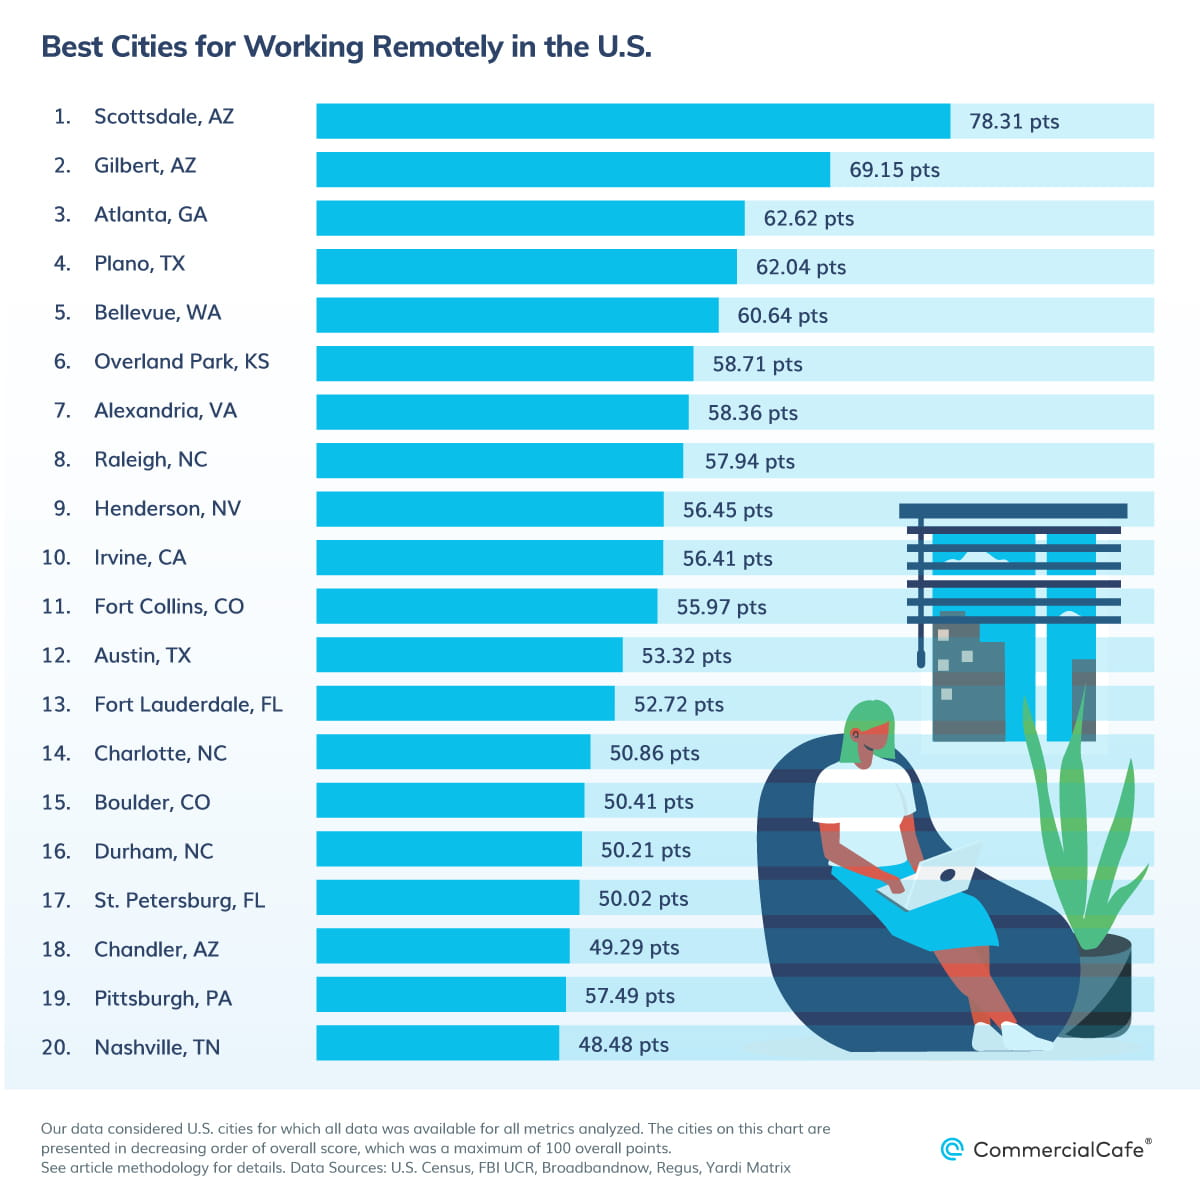 Top Cities for Working Remotely